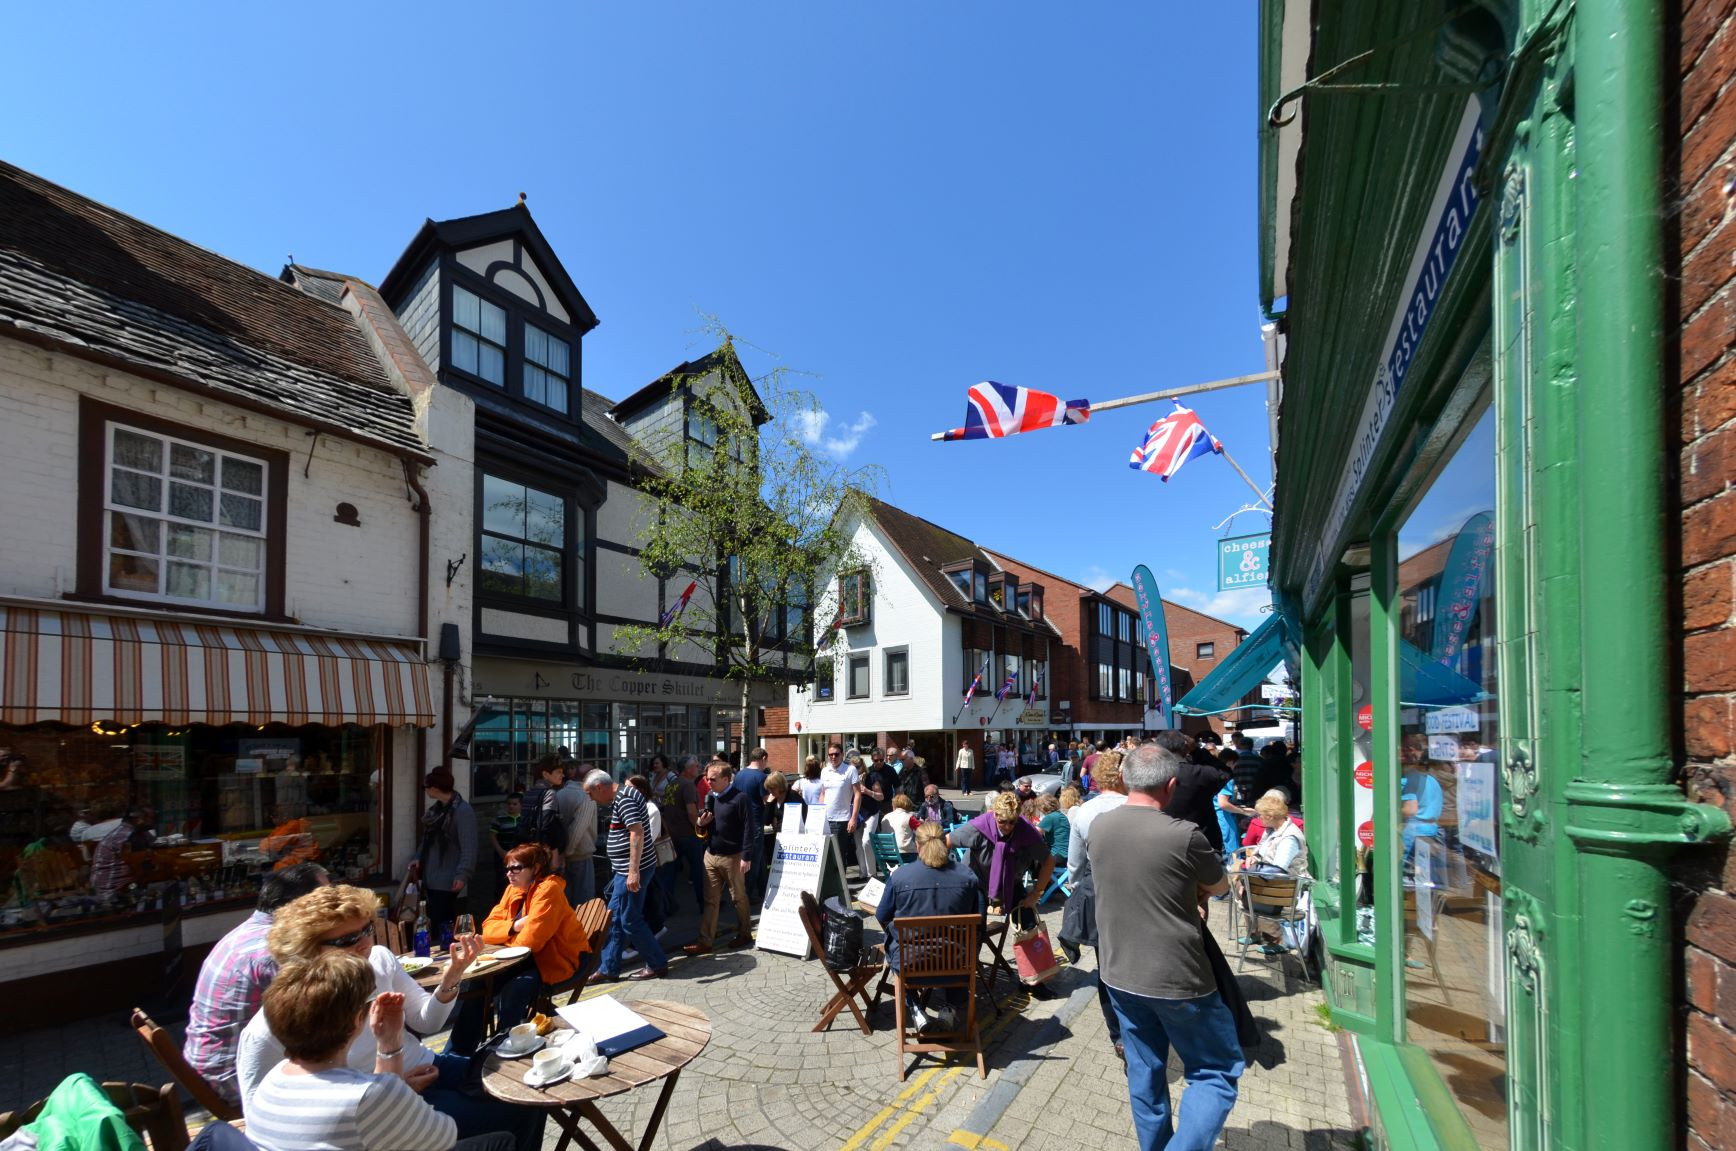 Happiest places to live in Britain revealed by survey